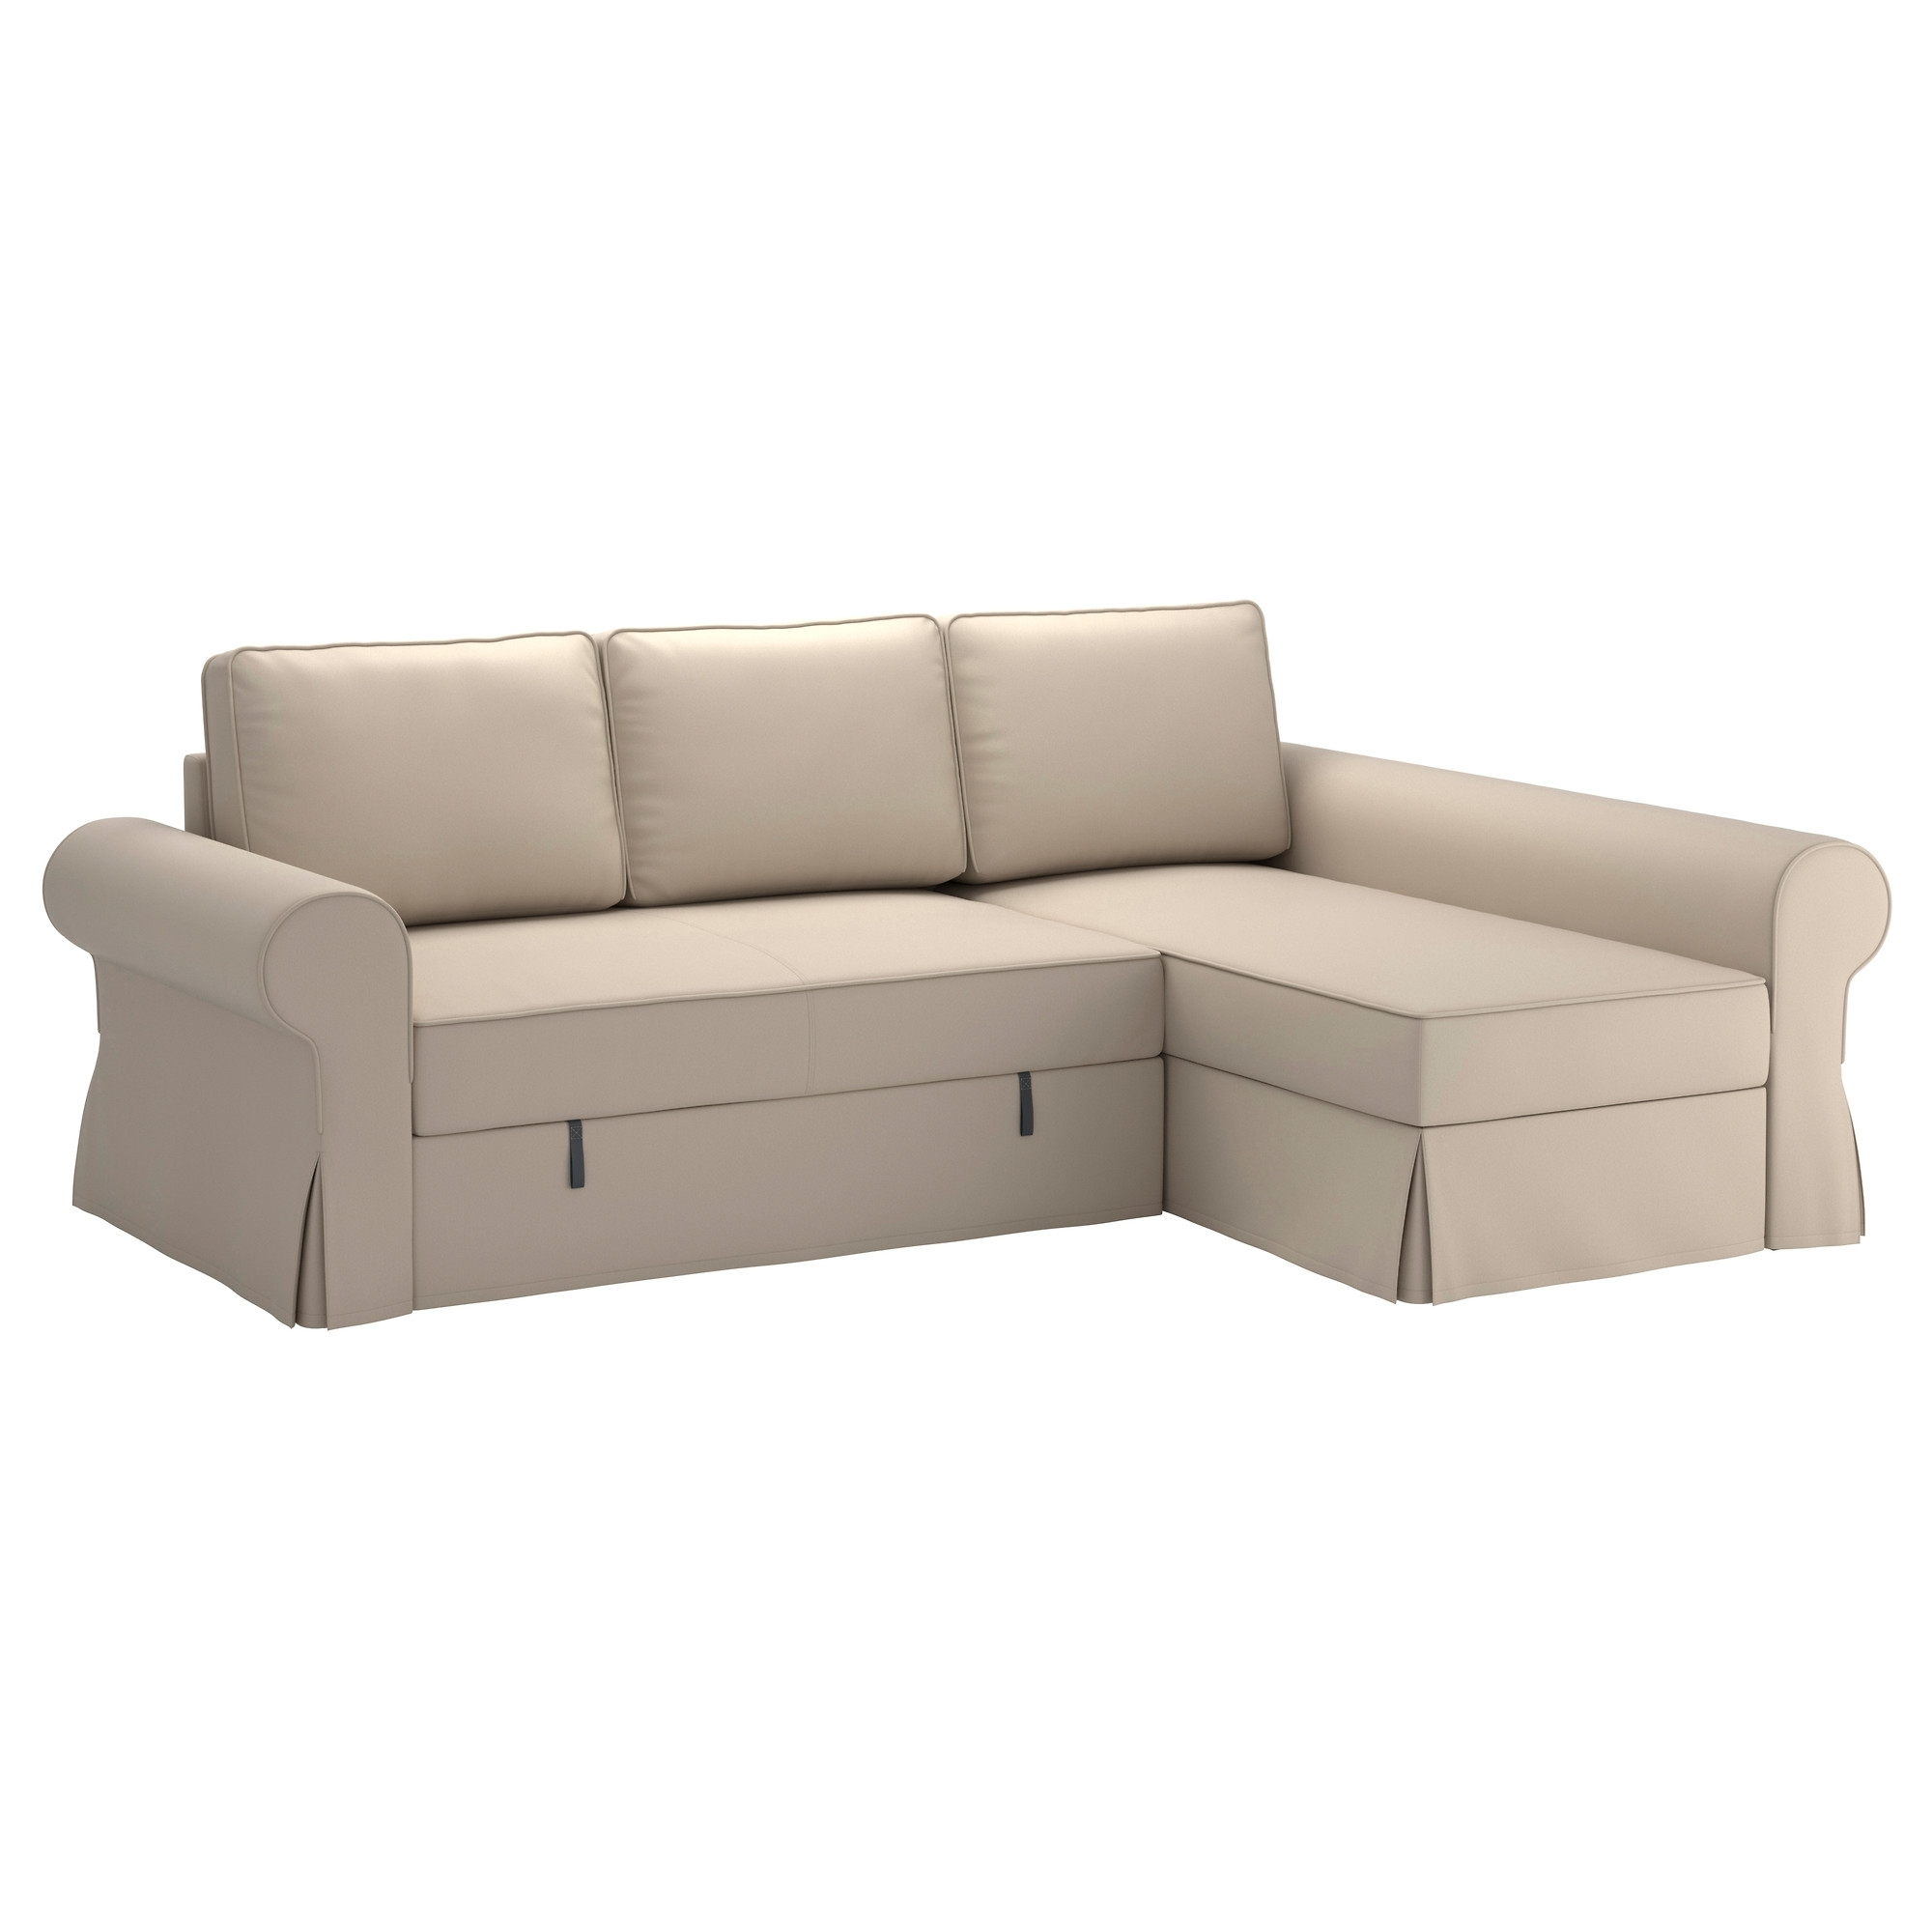 Ikea Sectional Sofa Beds For 2018 Sofa Bed Ikea (View 18 of 20)